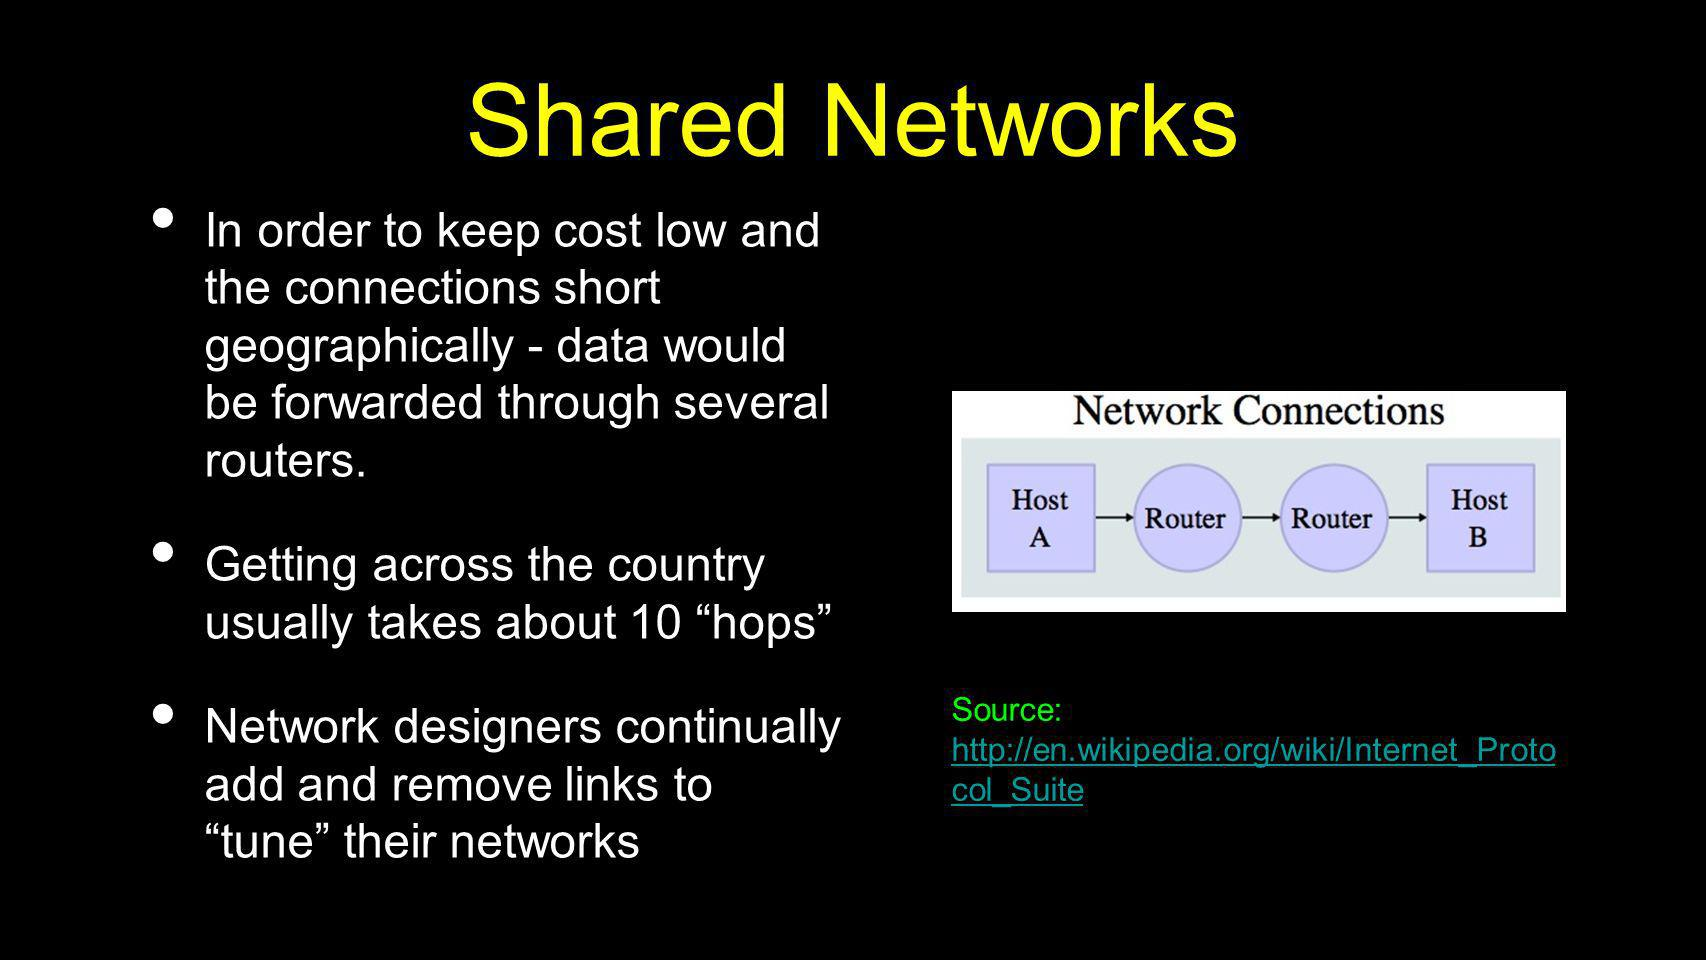 Shared NetworksIn order to keep cost low and the connections short geographically - data would be forwarded through several routers.